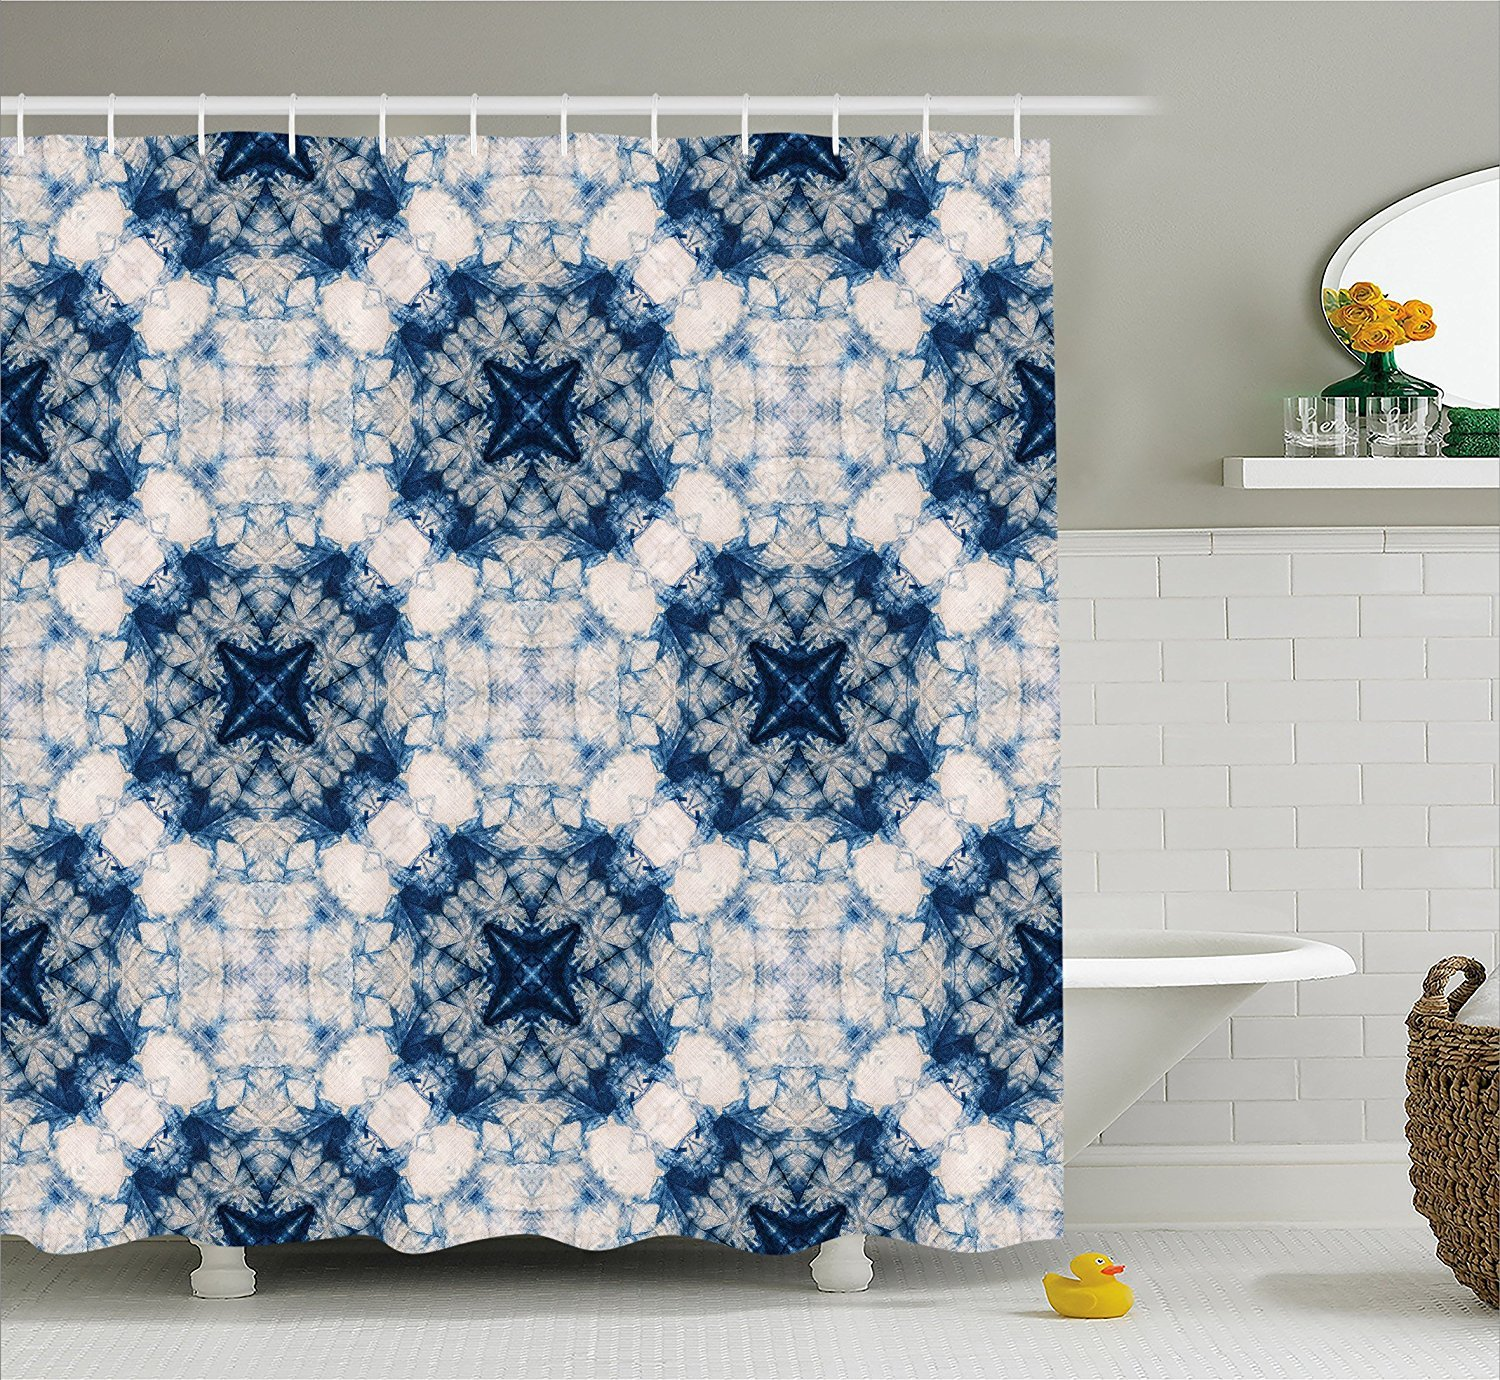 Mirryderr Tie Dye Shower Curtain Tribal Technique Art Featured Odd And Hazy Forms In Symmetric Axis Design Fabric Bathroom Decor Set With Hooks